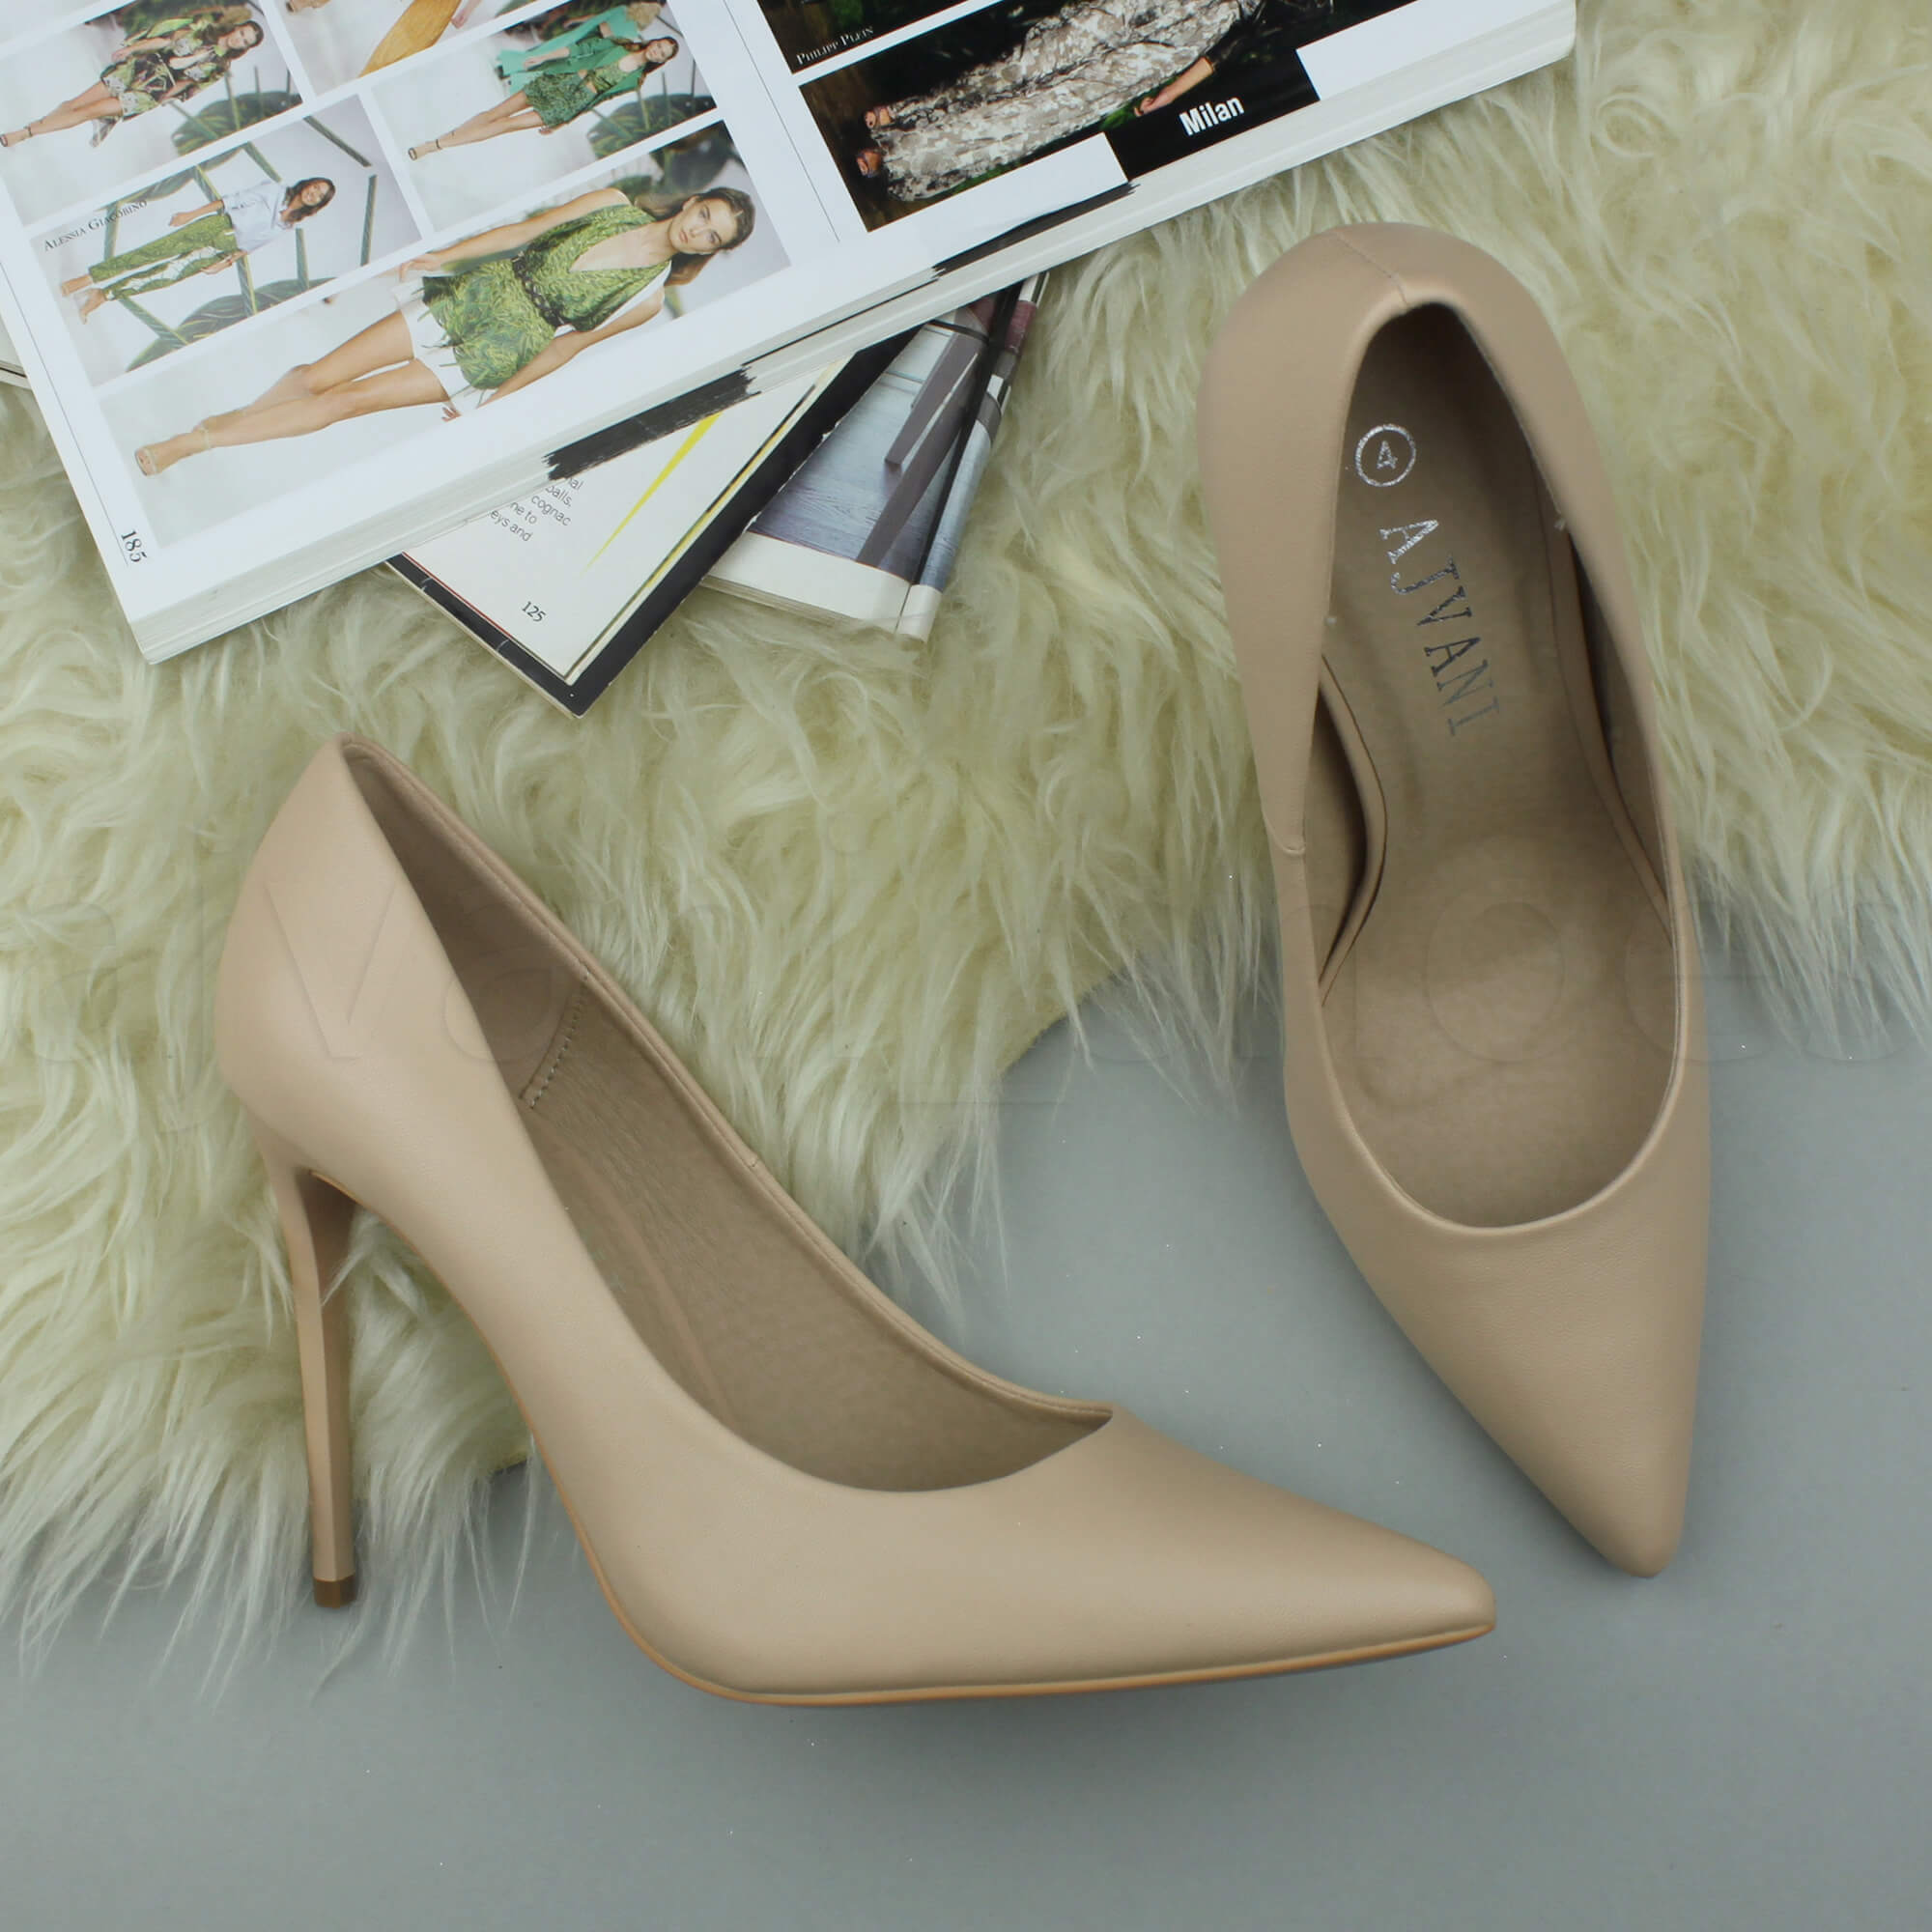 WOMENS-LADIES-HIGH-HEEL-POINTED-CONTRAST-COURT-SMART-PARTY-WORK-SHOES-PUMPS-SIZE thumbnail 123